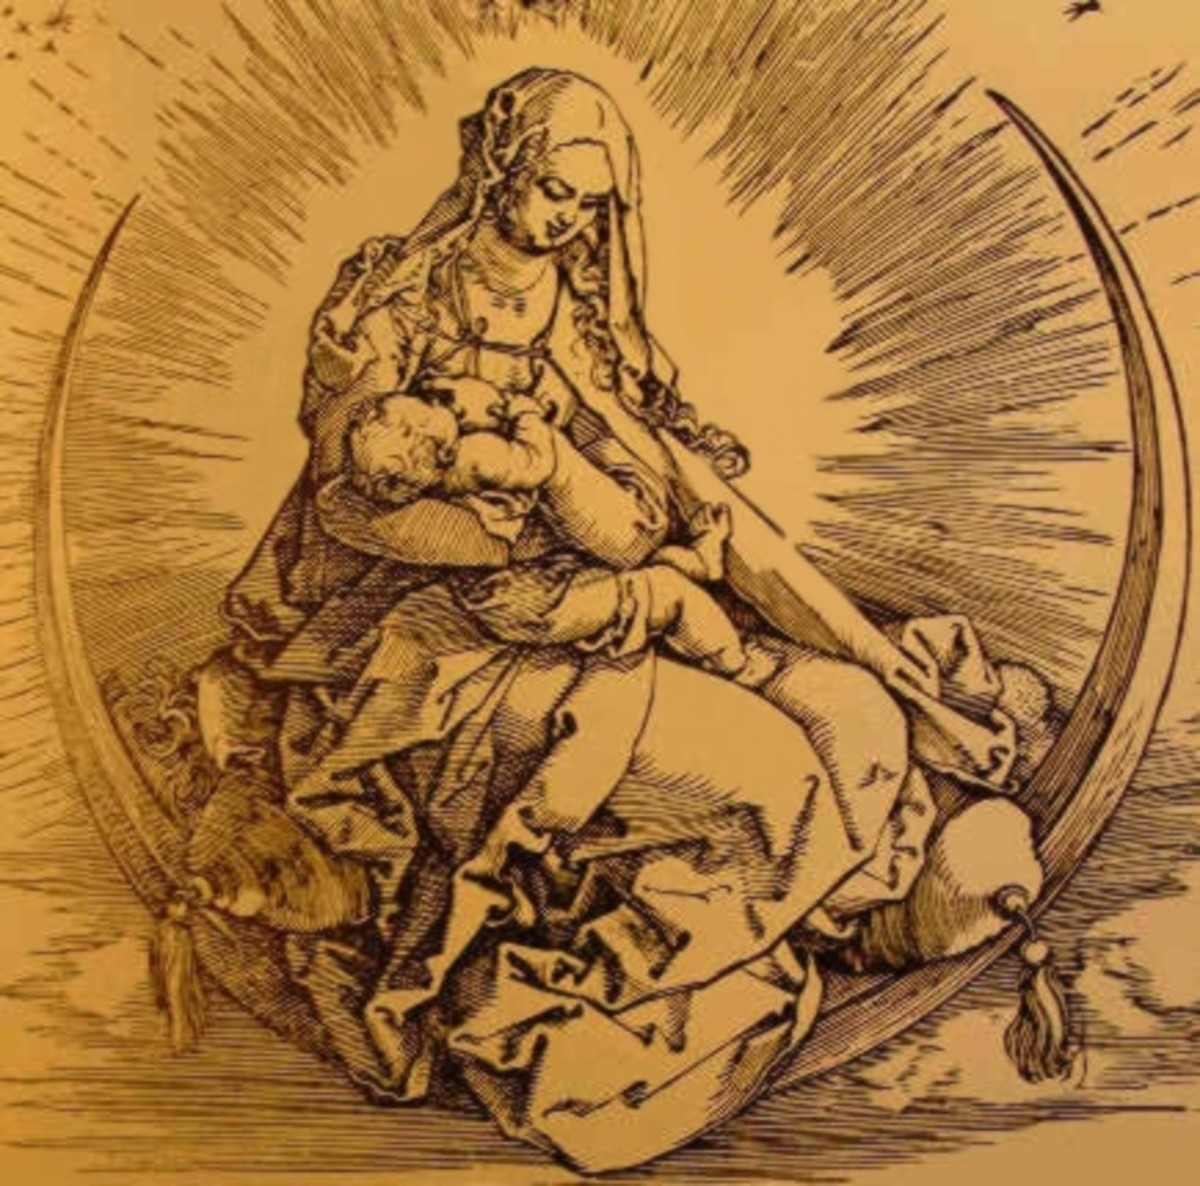 The Virgin Mary sitting upon the cresent moon, nursing the infant Jesus